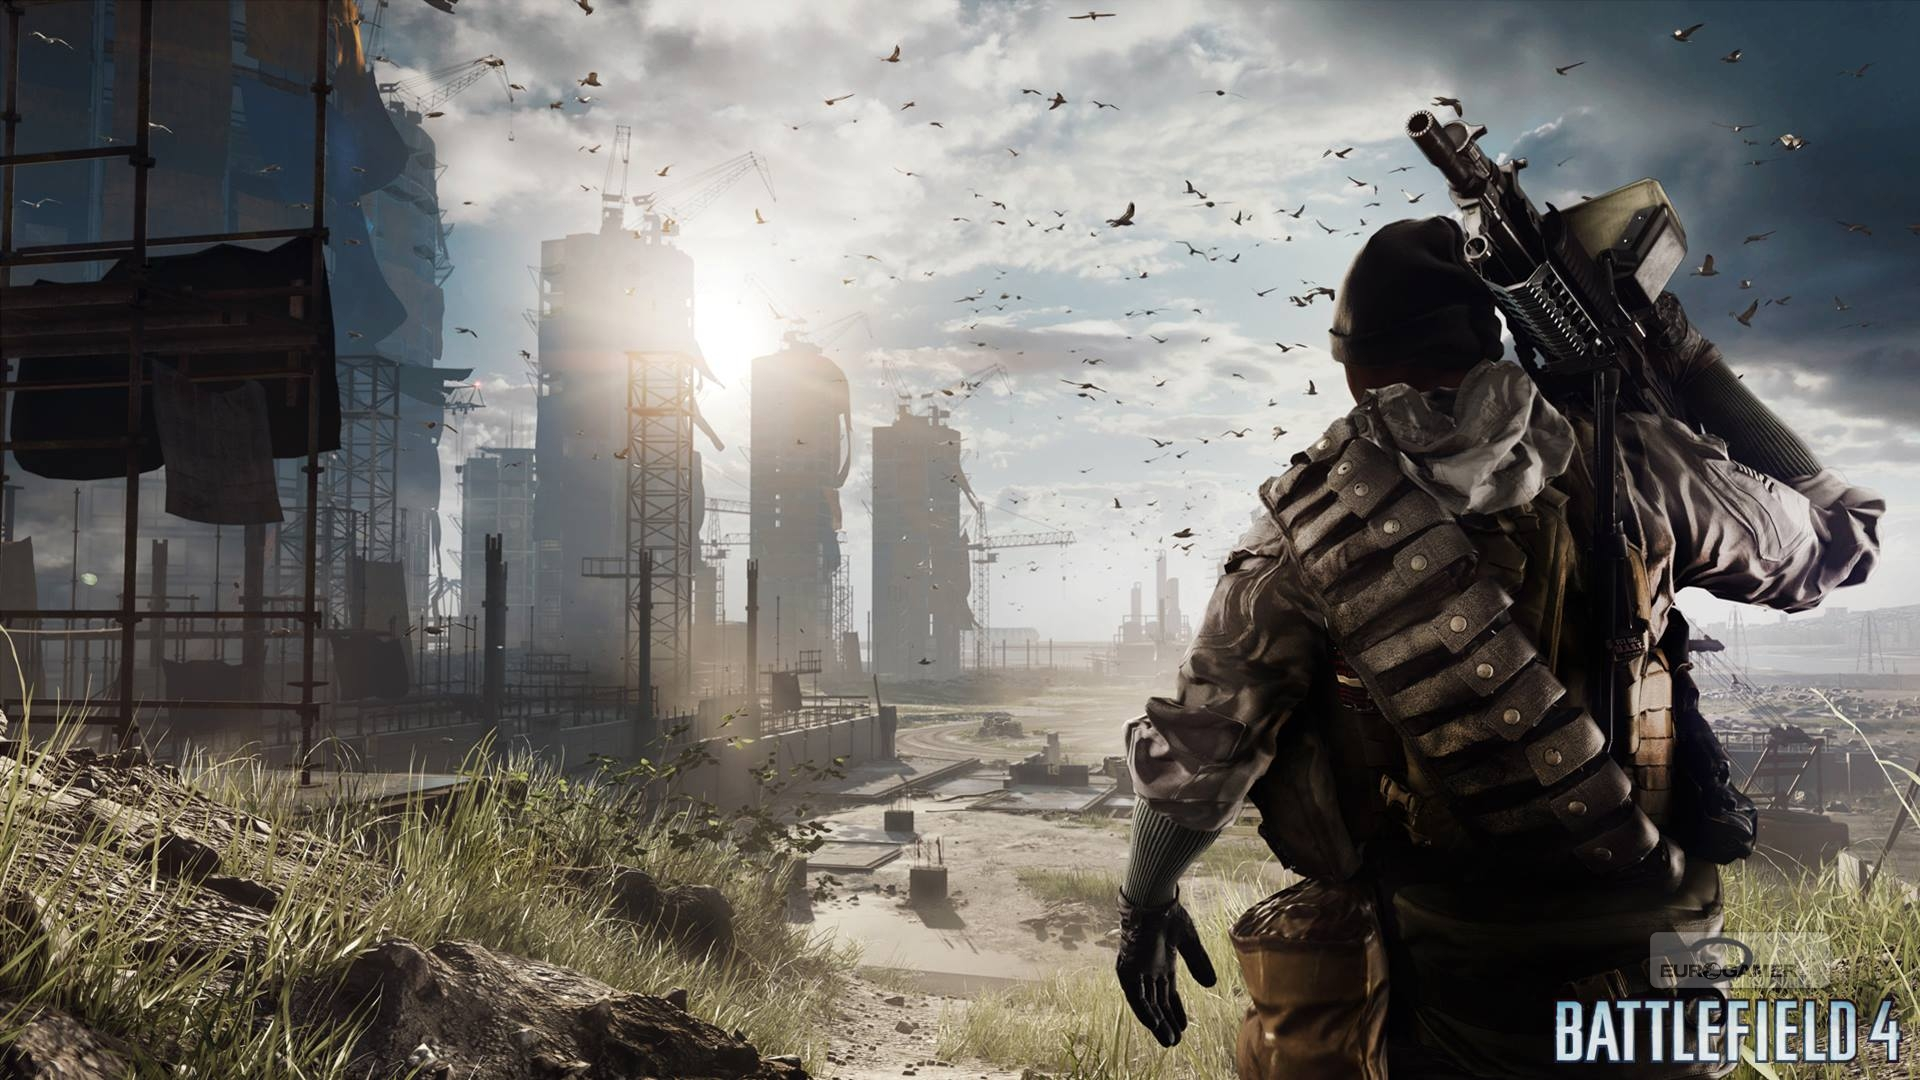 Battlefield 4 Games Wallpaper Hd: Battlefield 4 HD Wallpaper